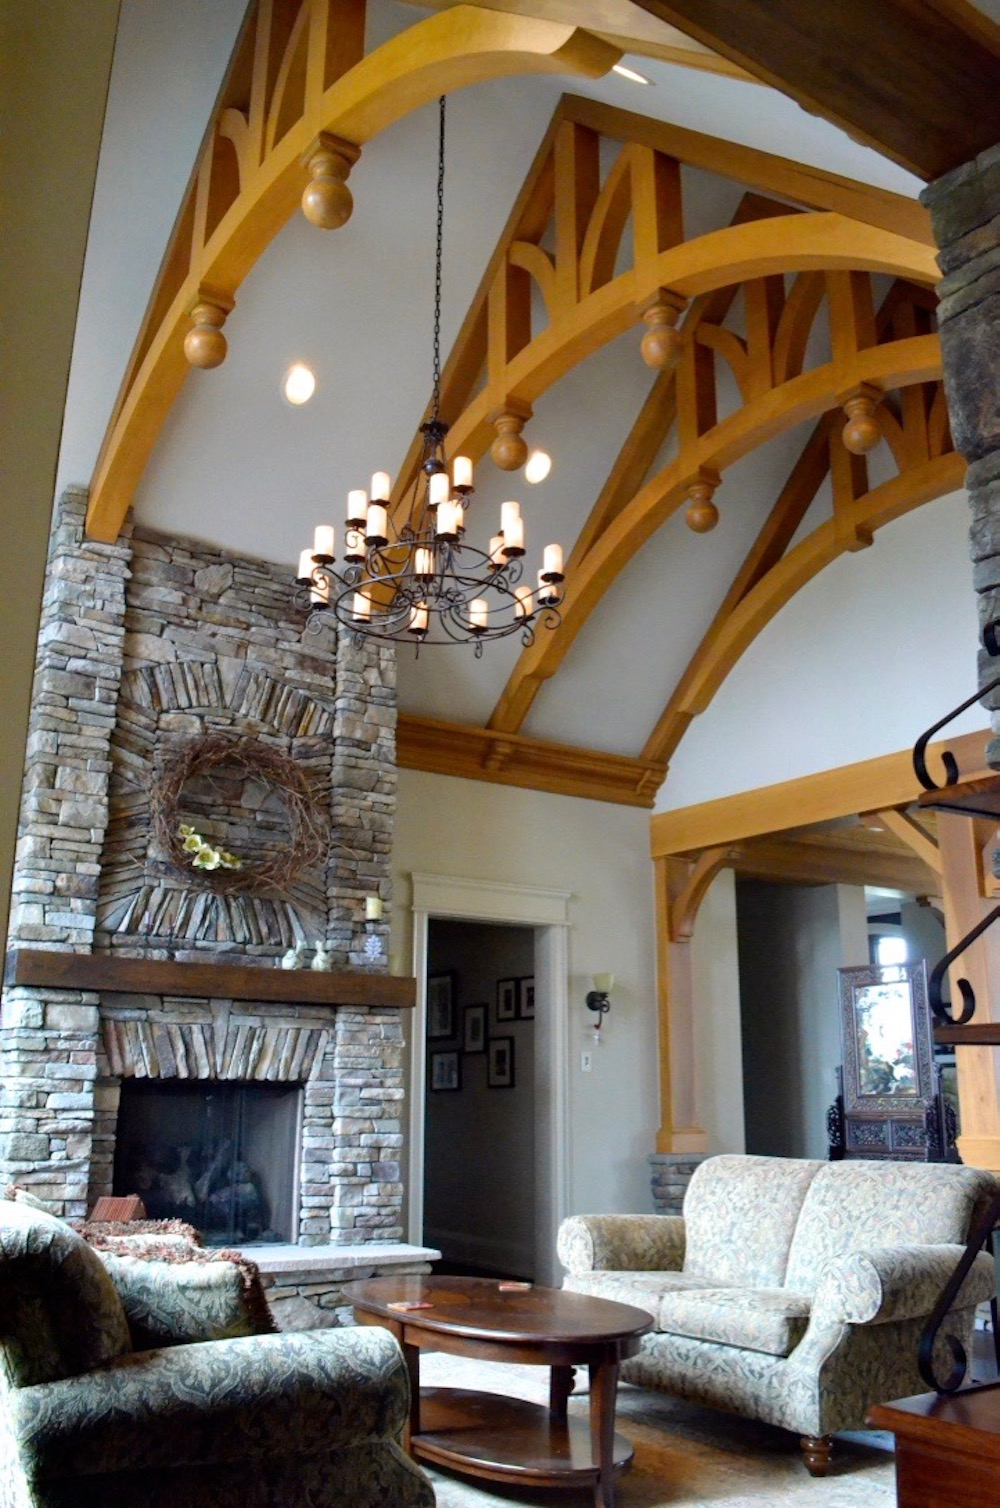 custom home decorative arched beams stone fireplace great room living room.jpeg